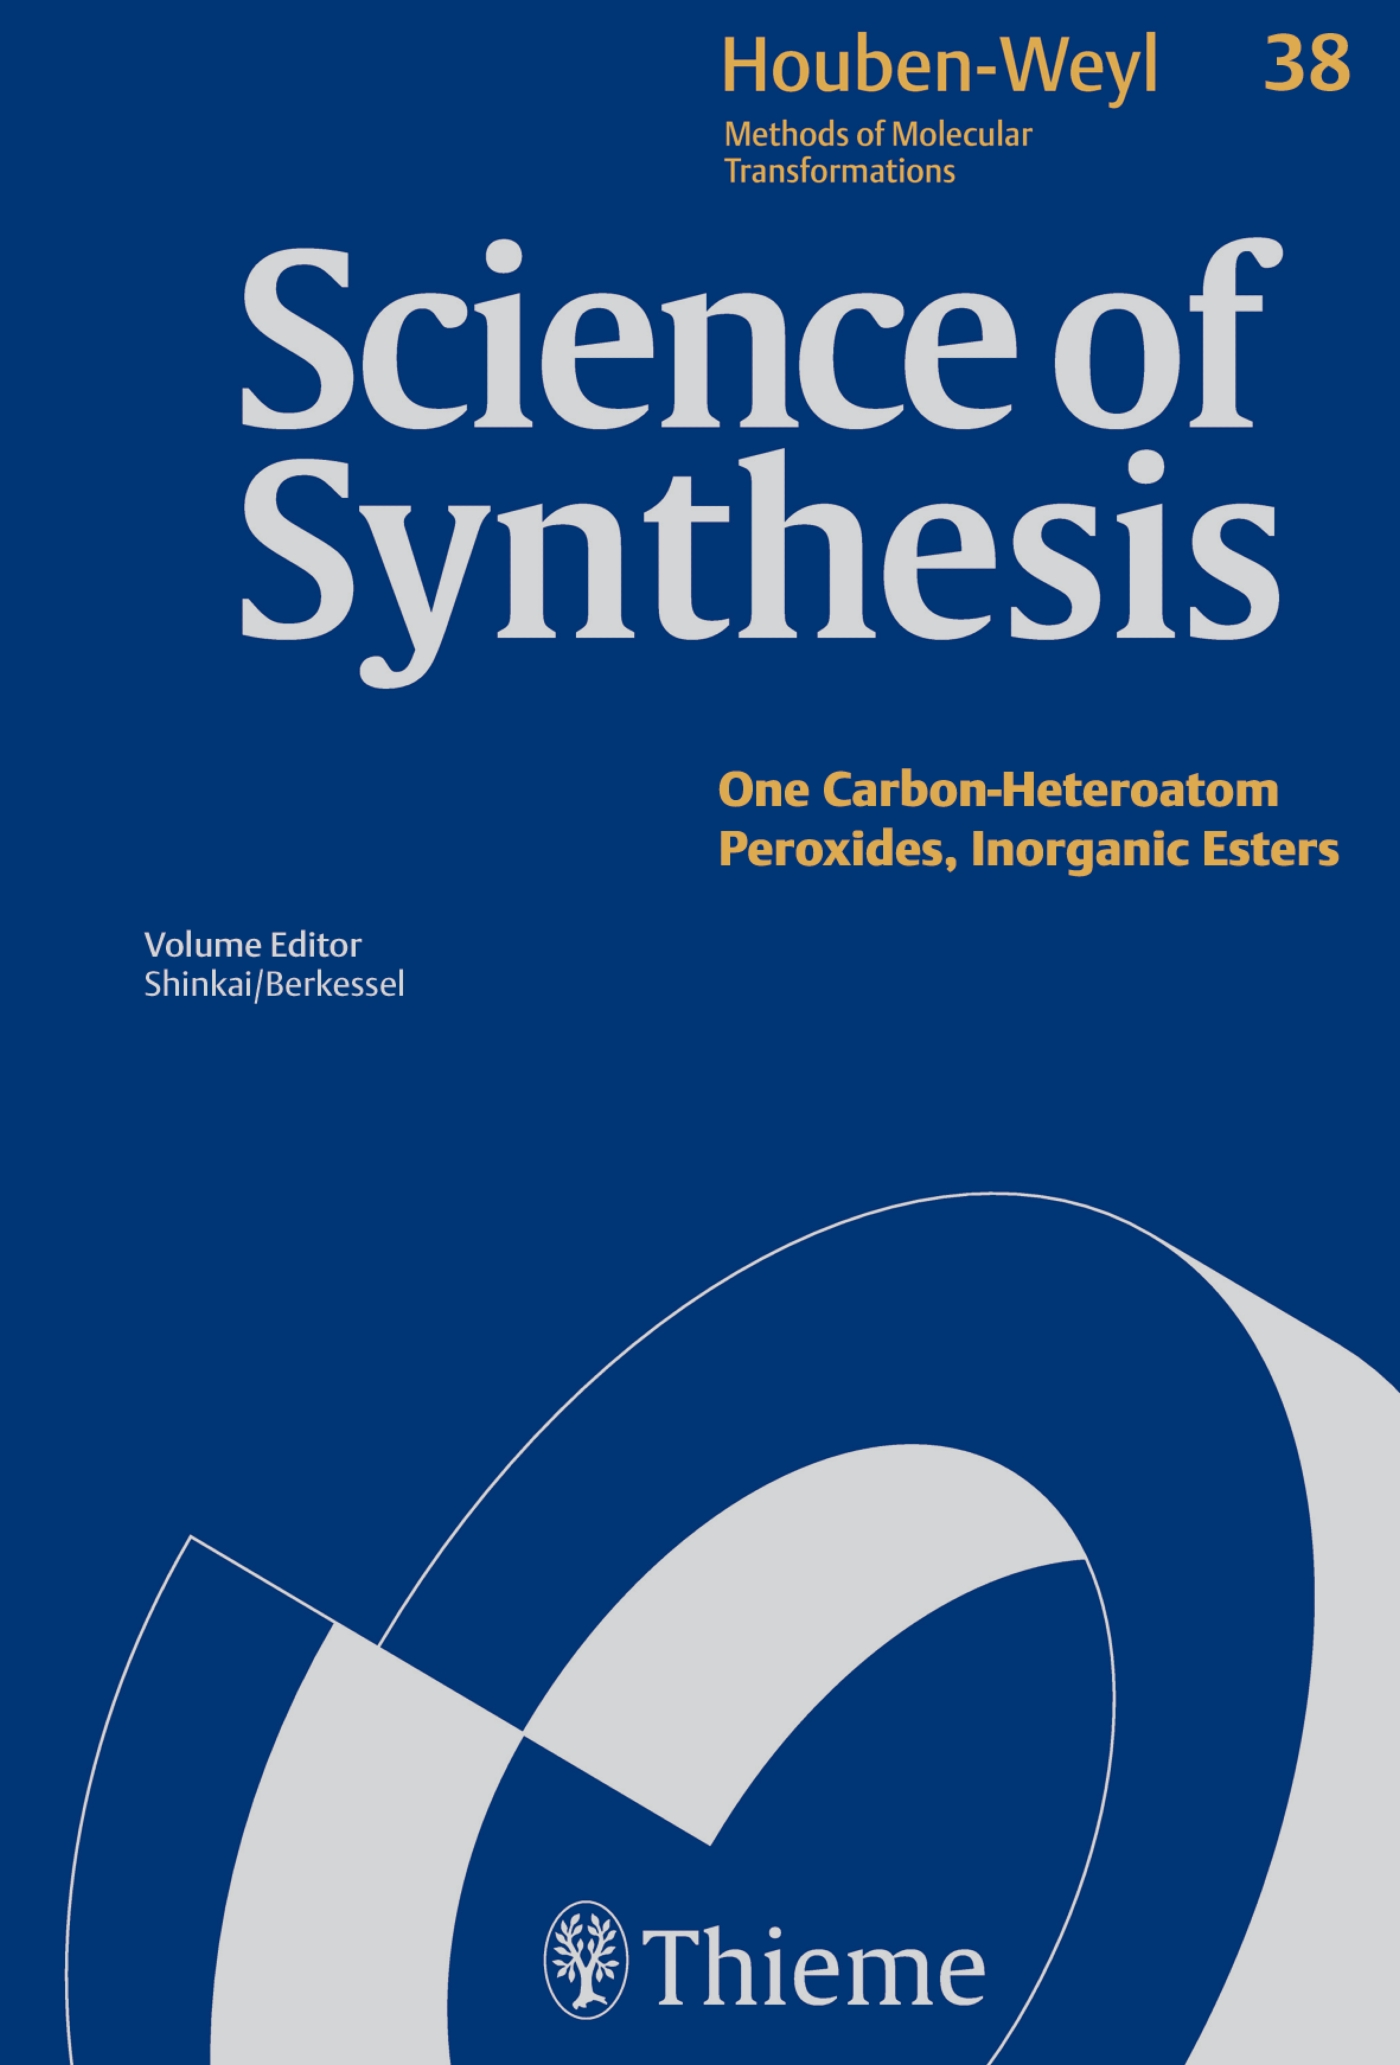 Science of Synthesis: Houben-Weyl Methods of Molecular Transformations  Vol. 38